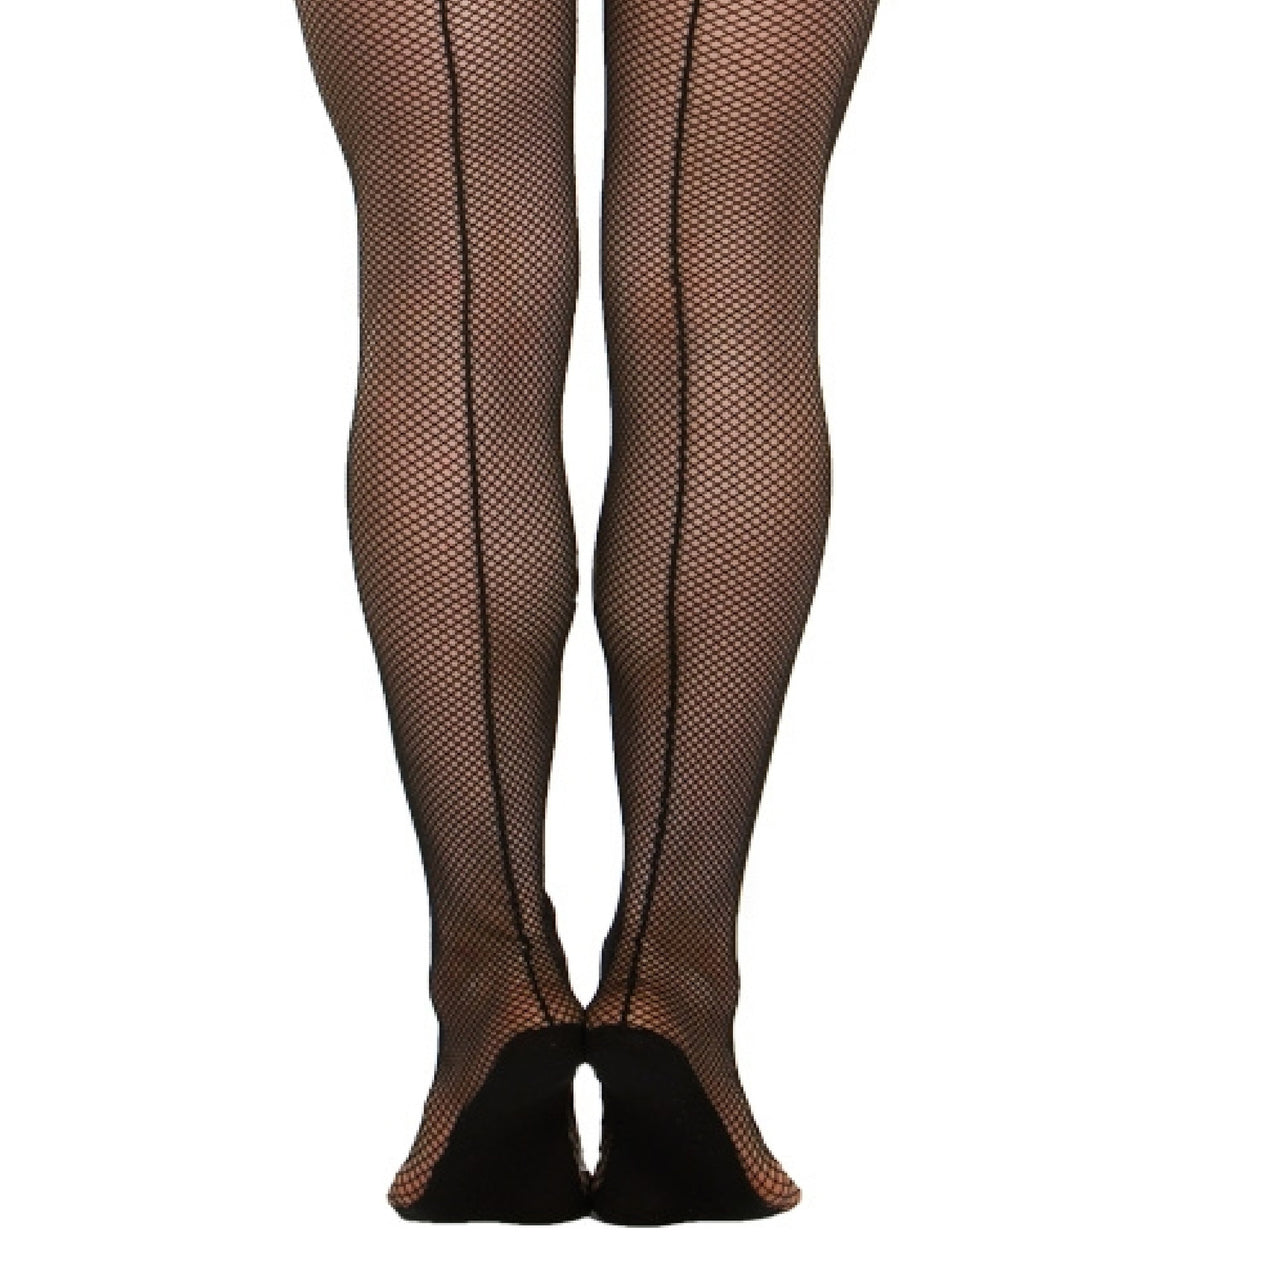 b7fa34597cc57 Capezio 3400 - Professional Fishnet Tight Ladies – The Dance Shop